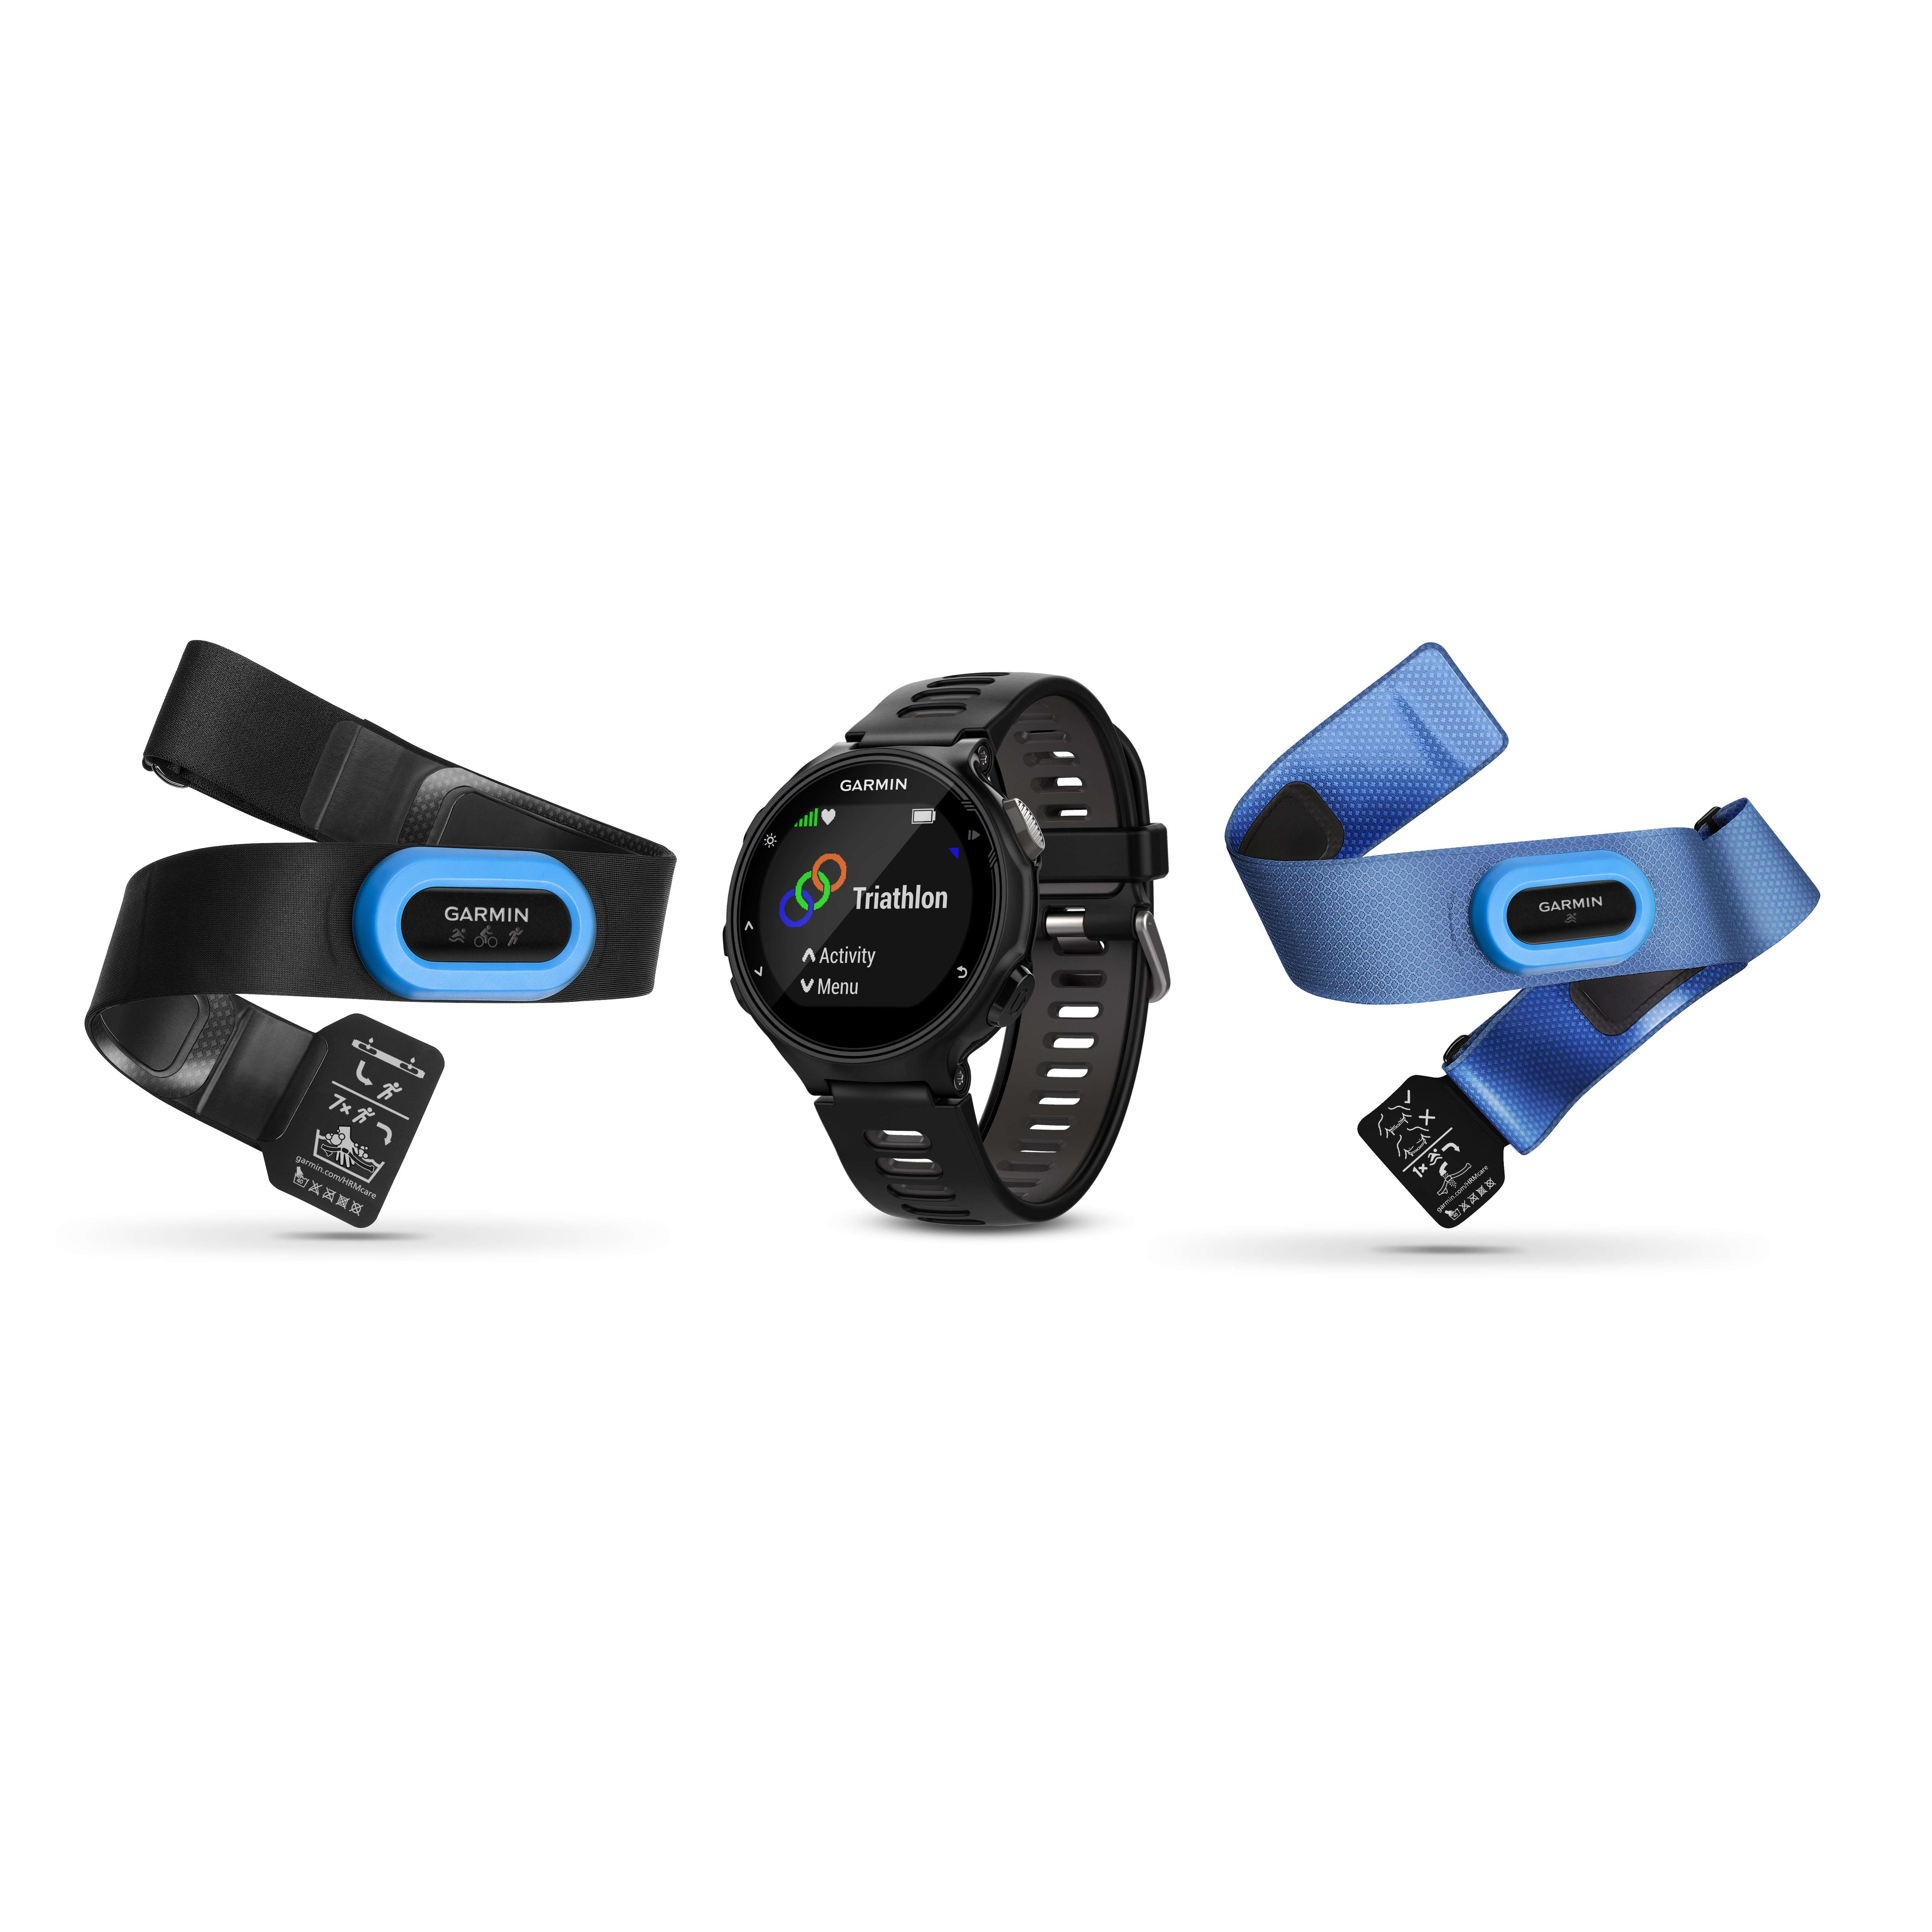 GARMIN Forerunner 735XT GPS Running Multi-Sport Watch Tri Bundle